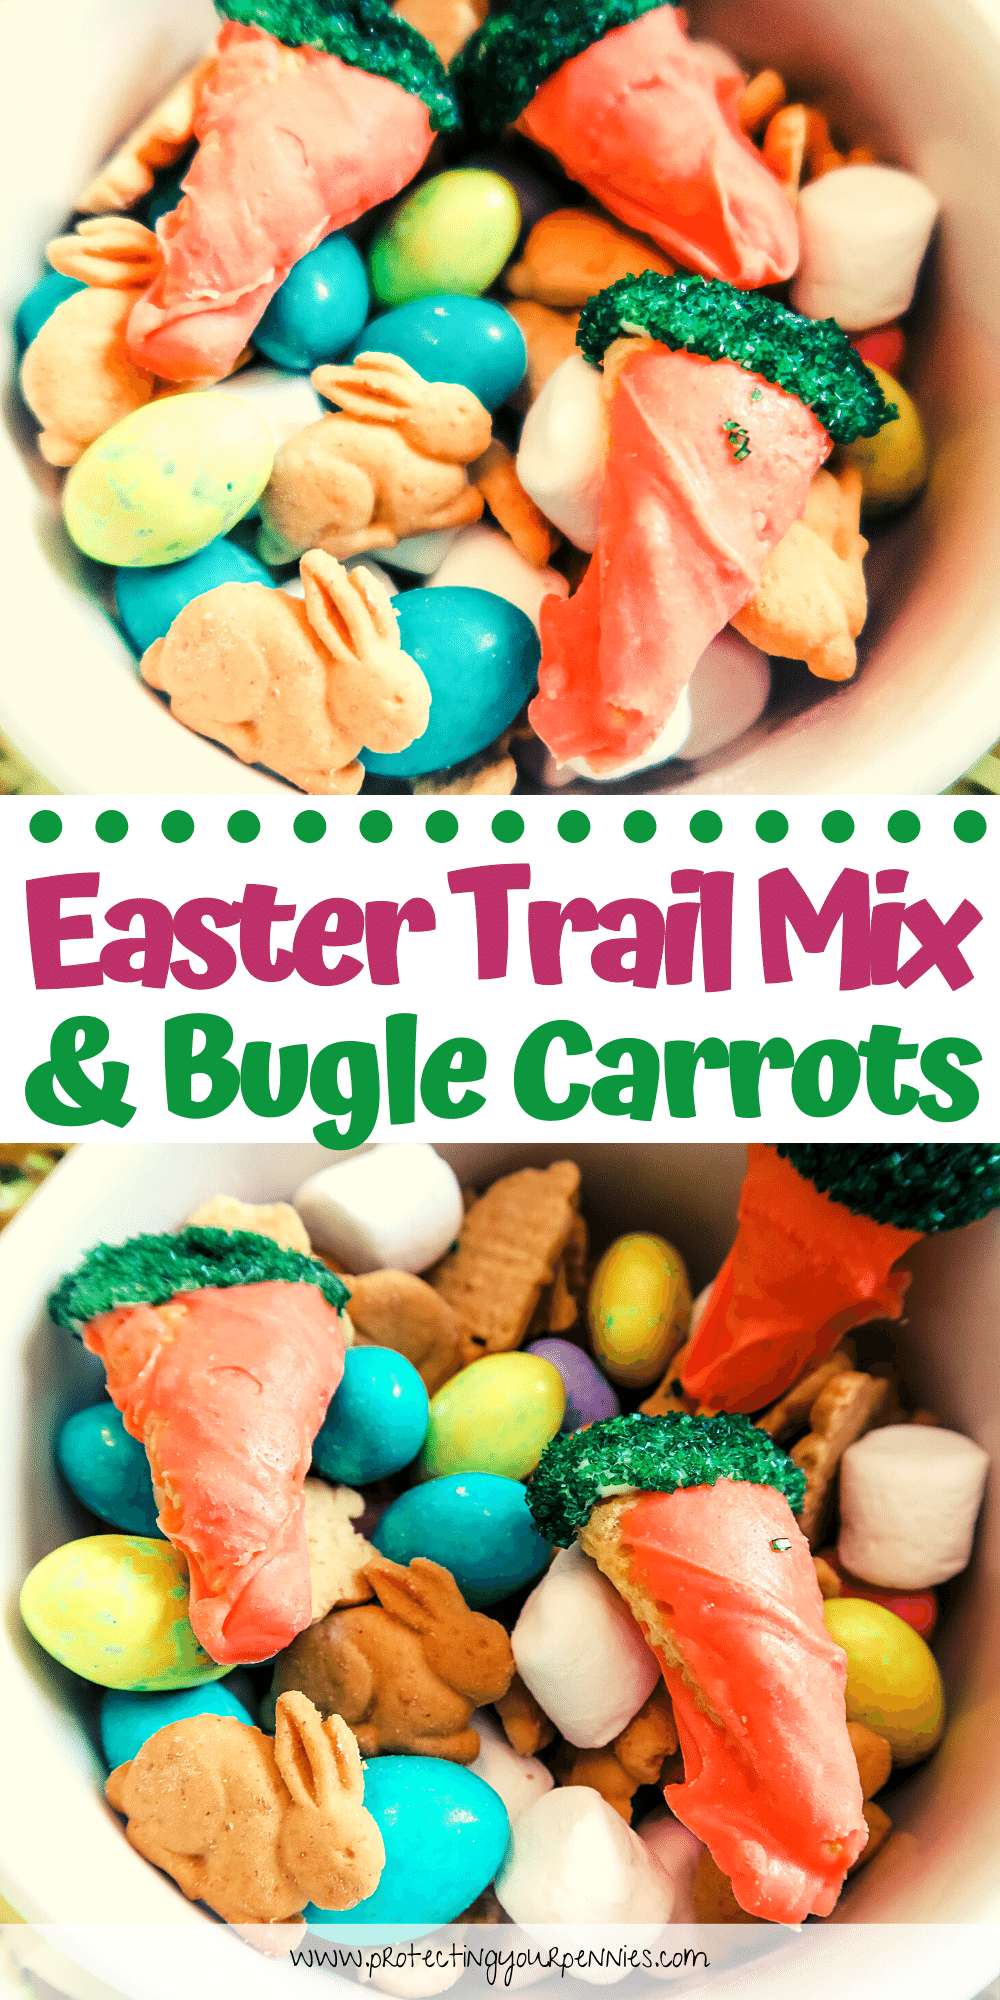 Easter Trail Mix & Bugle Carrots